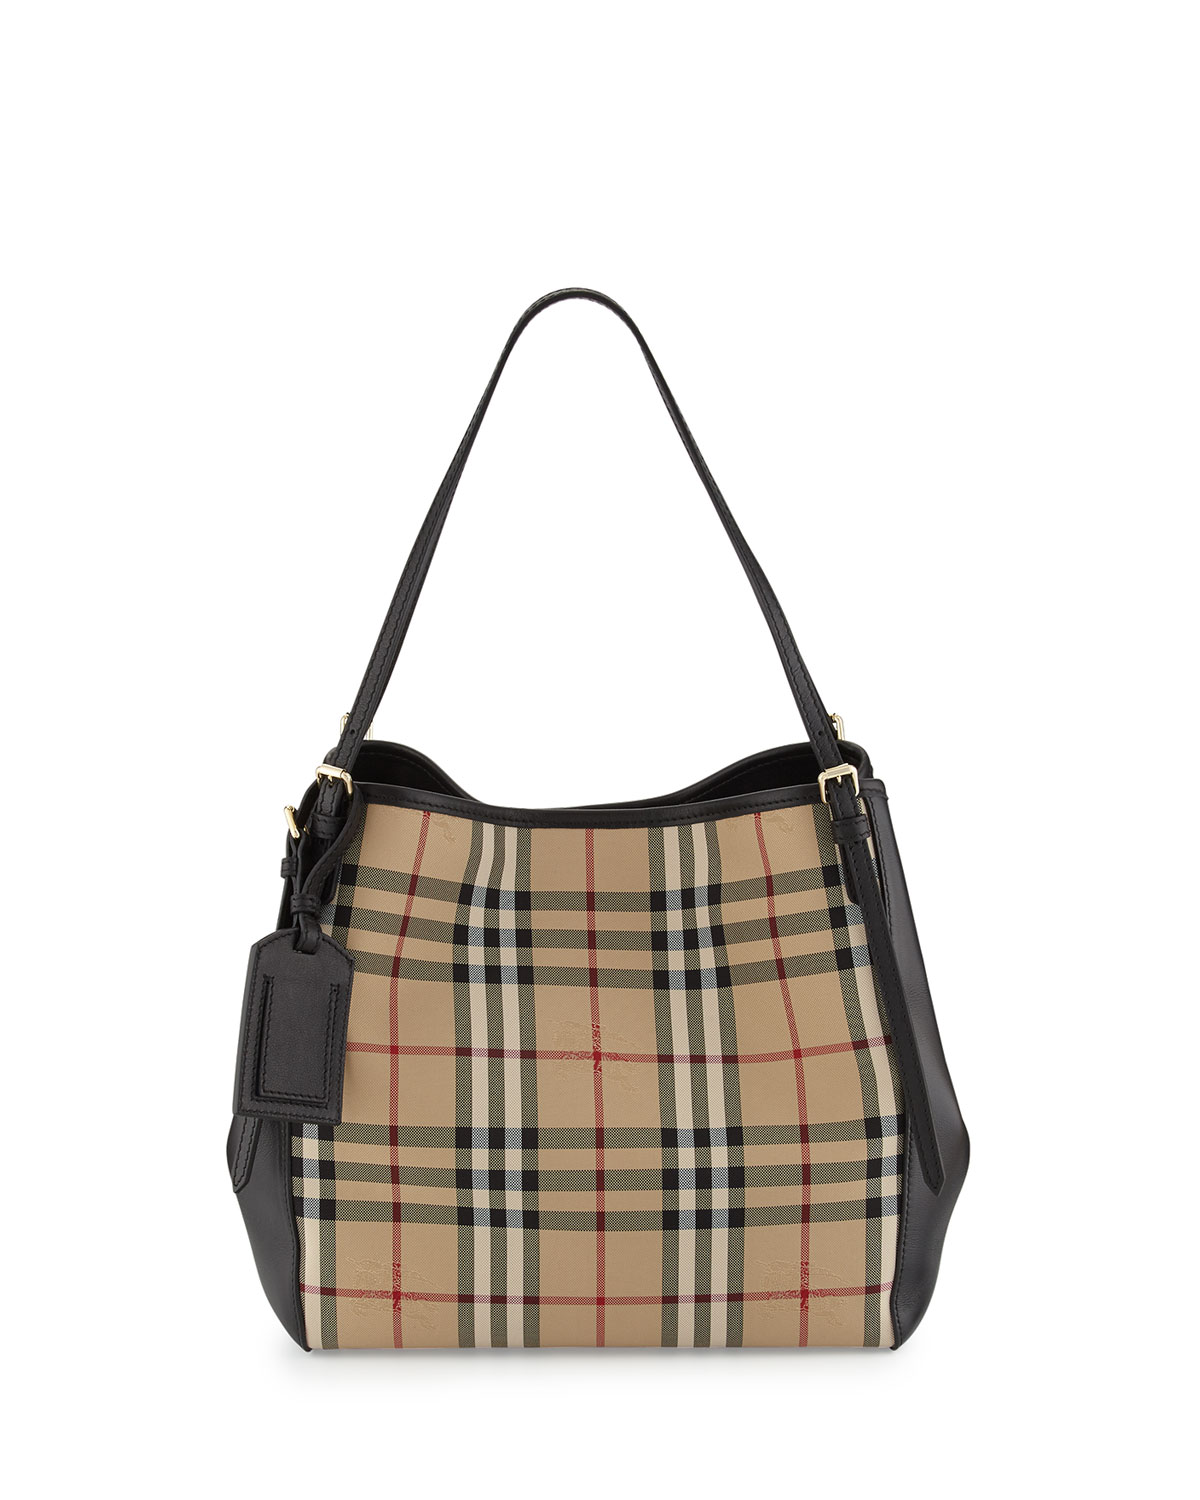 06499b833977 Burberry Small Canter in Horseferry Check and Leather Hobo Bag ...